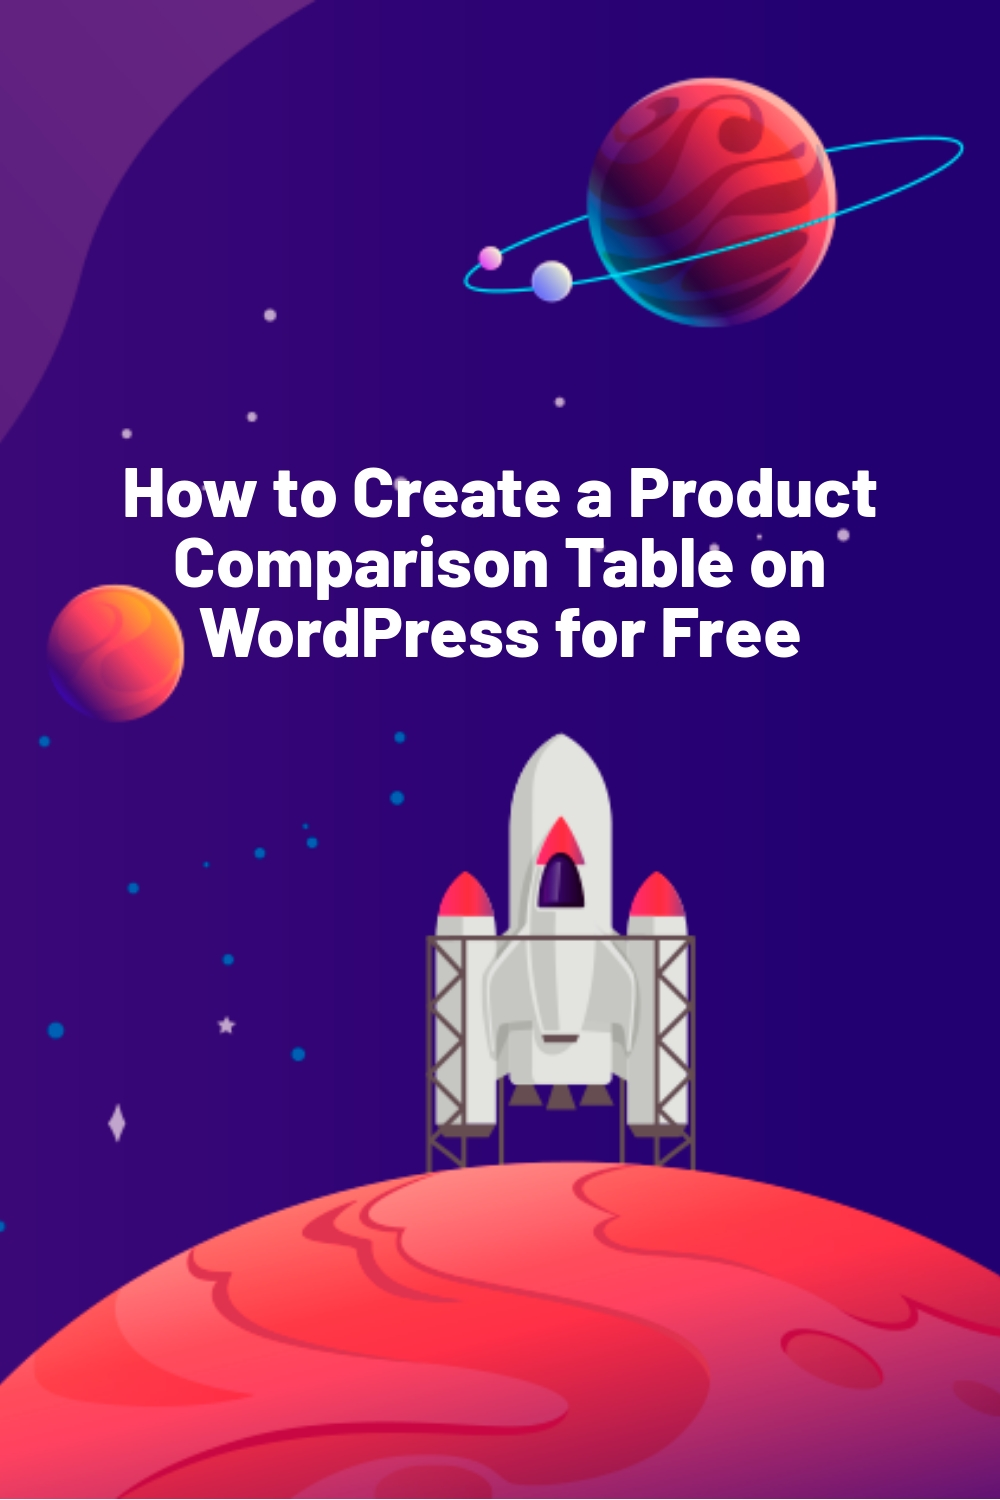 How to Create a Product Comparison Table on WordPress for Free